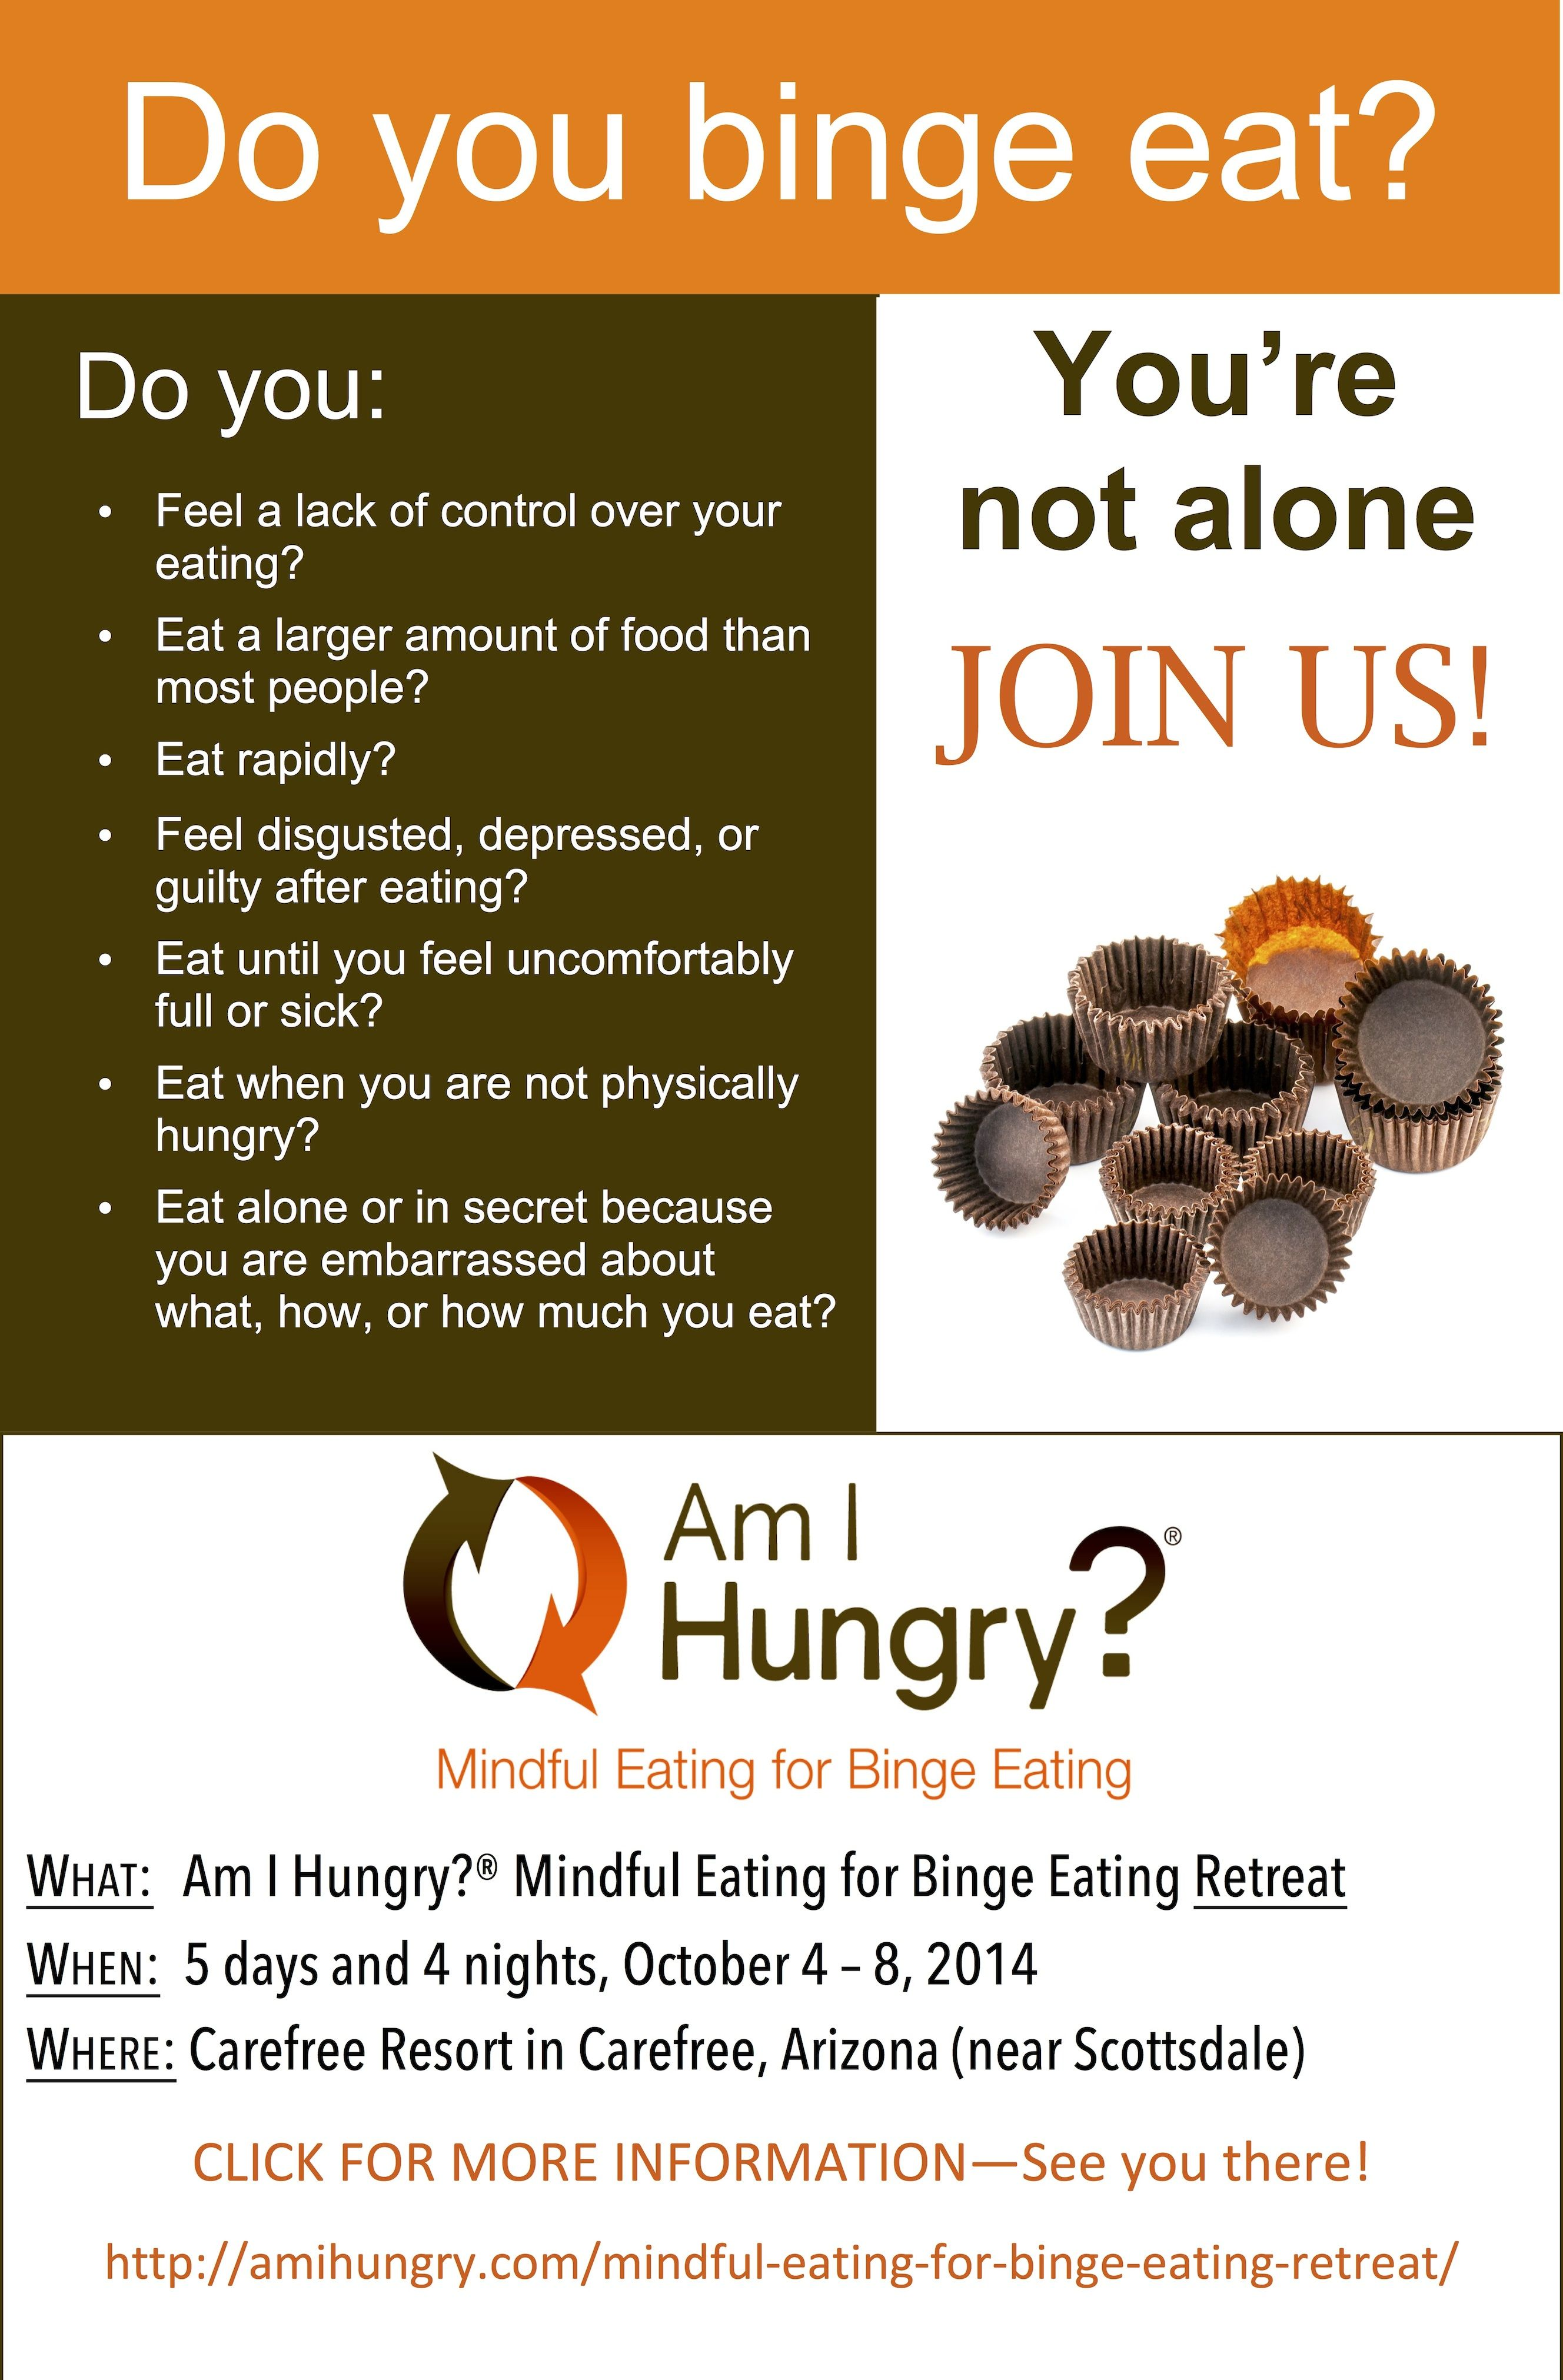 Mindful Eating Retreat For Emotional Eating And Binge Eating